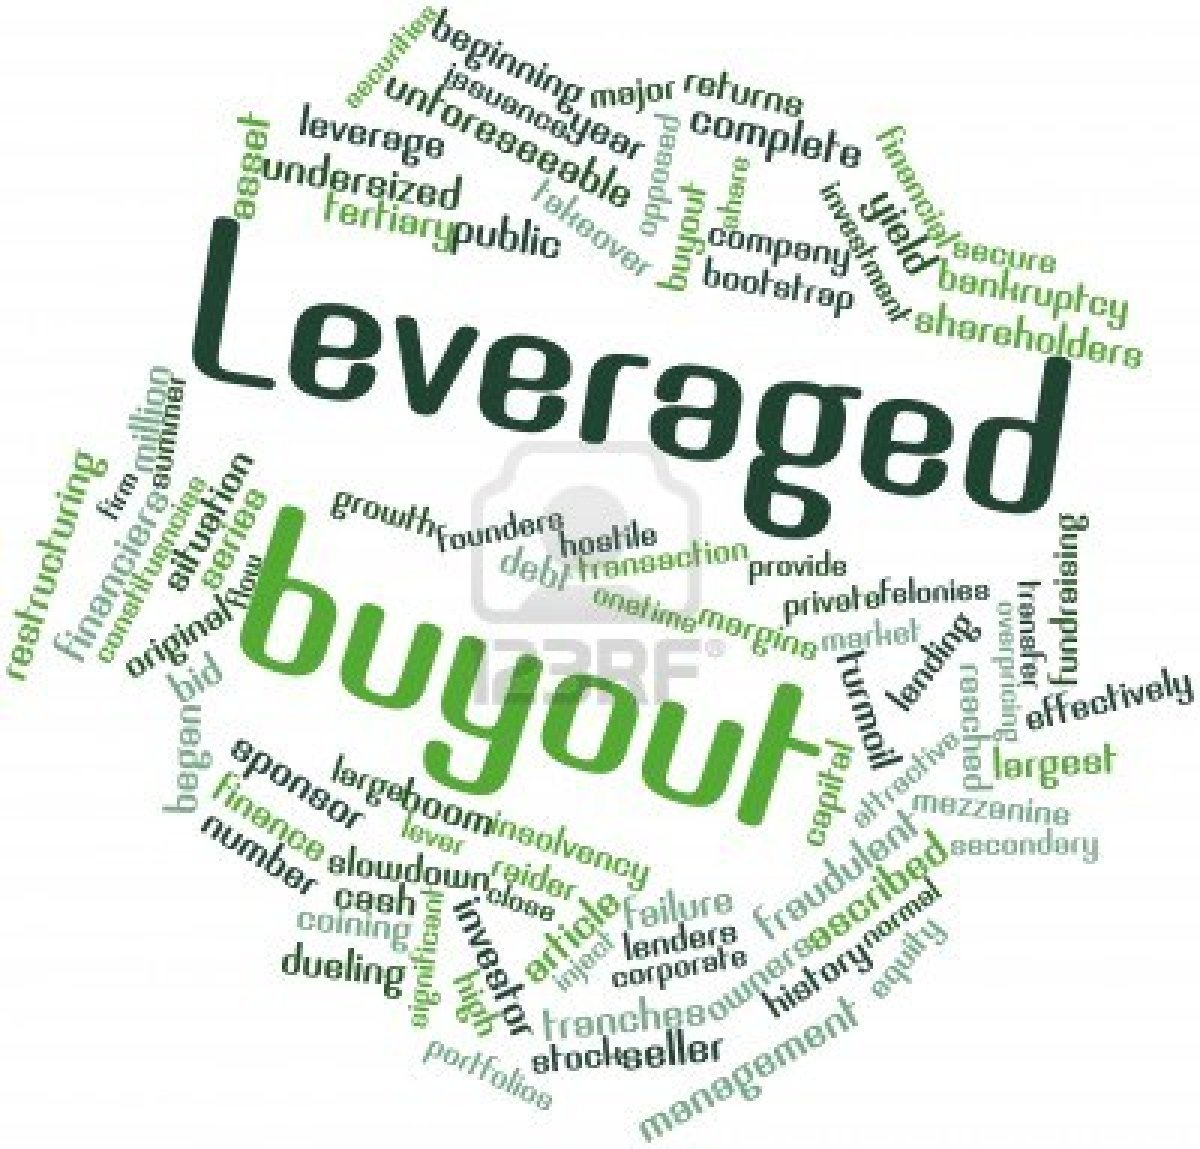 leveraged buyouts A leveraged buyout (lbo) is a transaction where a business is acquired using debt as the main source of consideration an lbo transaction typically occur when a private equity (pe.